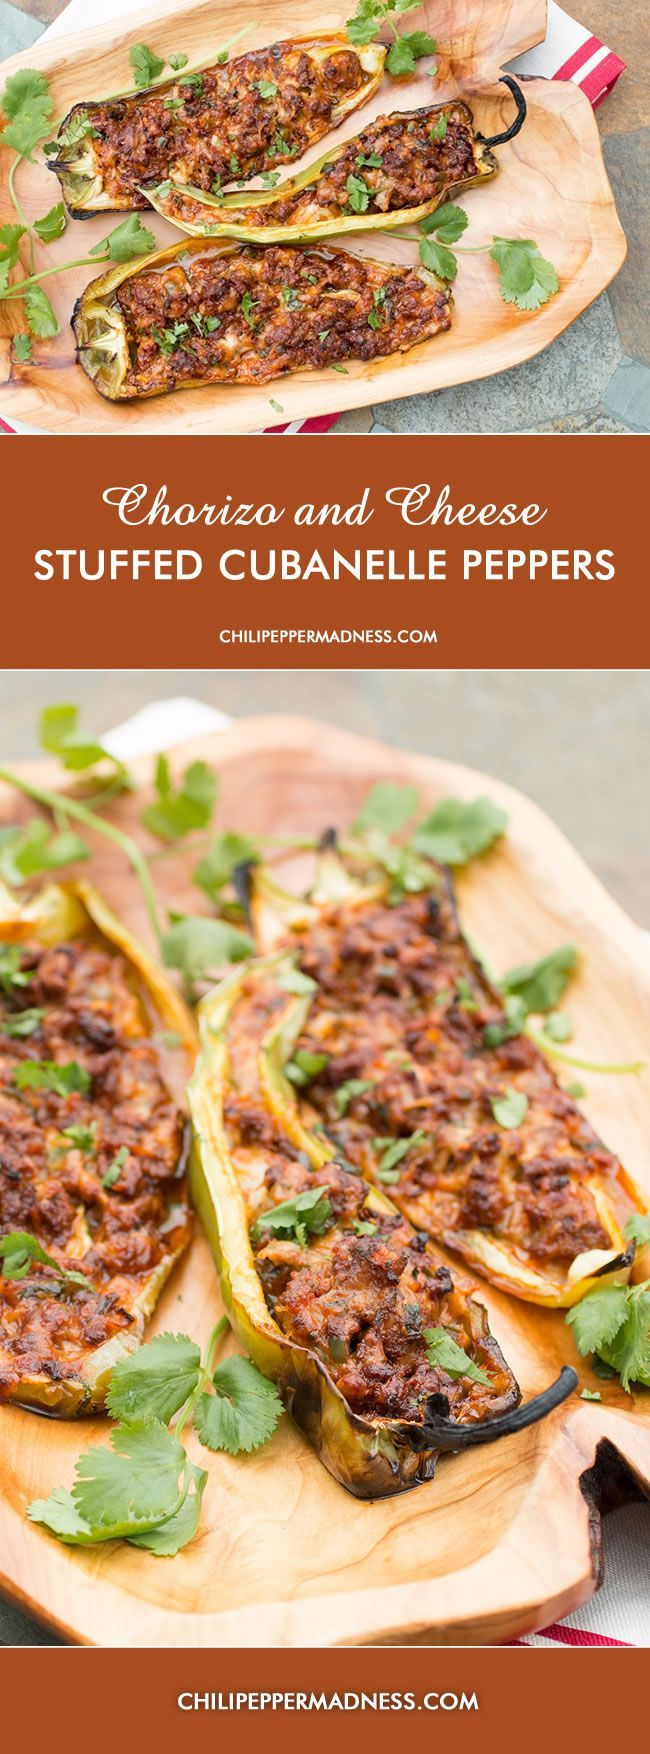 Grilled Chorizo and Cheese Stuffed Cubanelle Peppers   Chili Pepper Madness